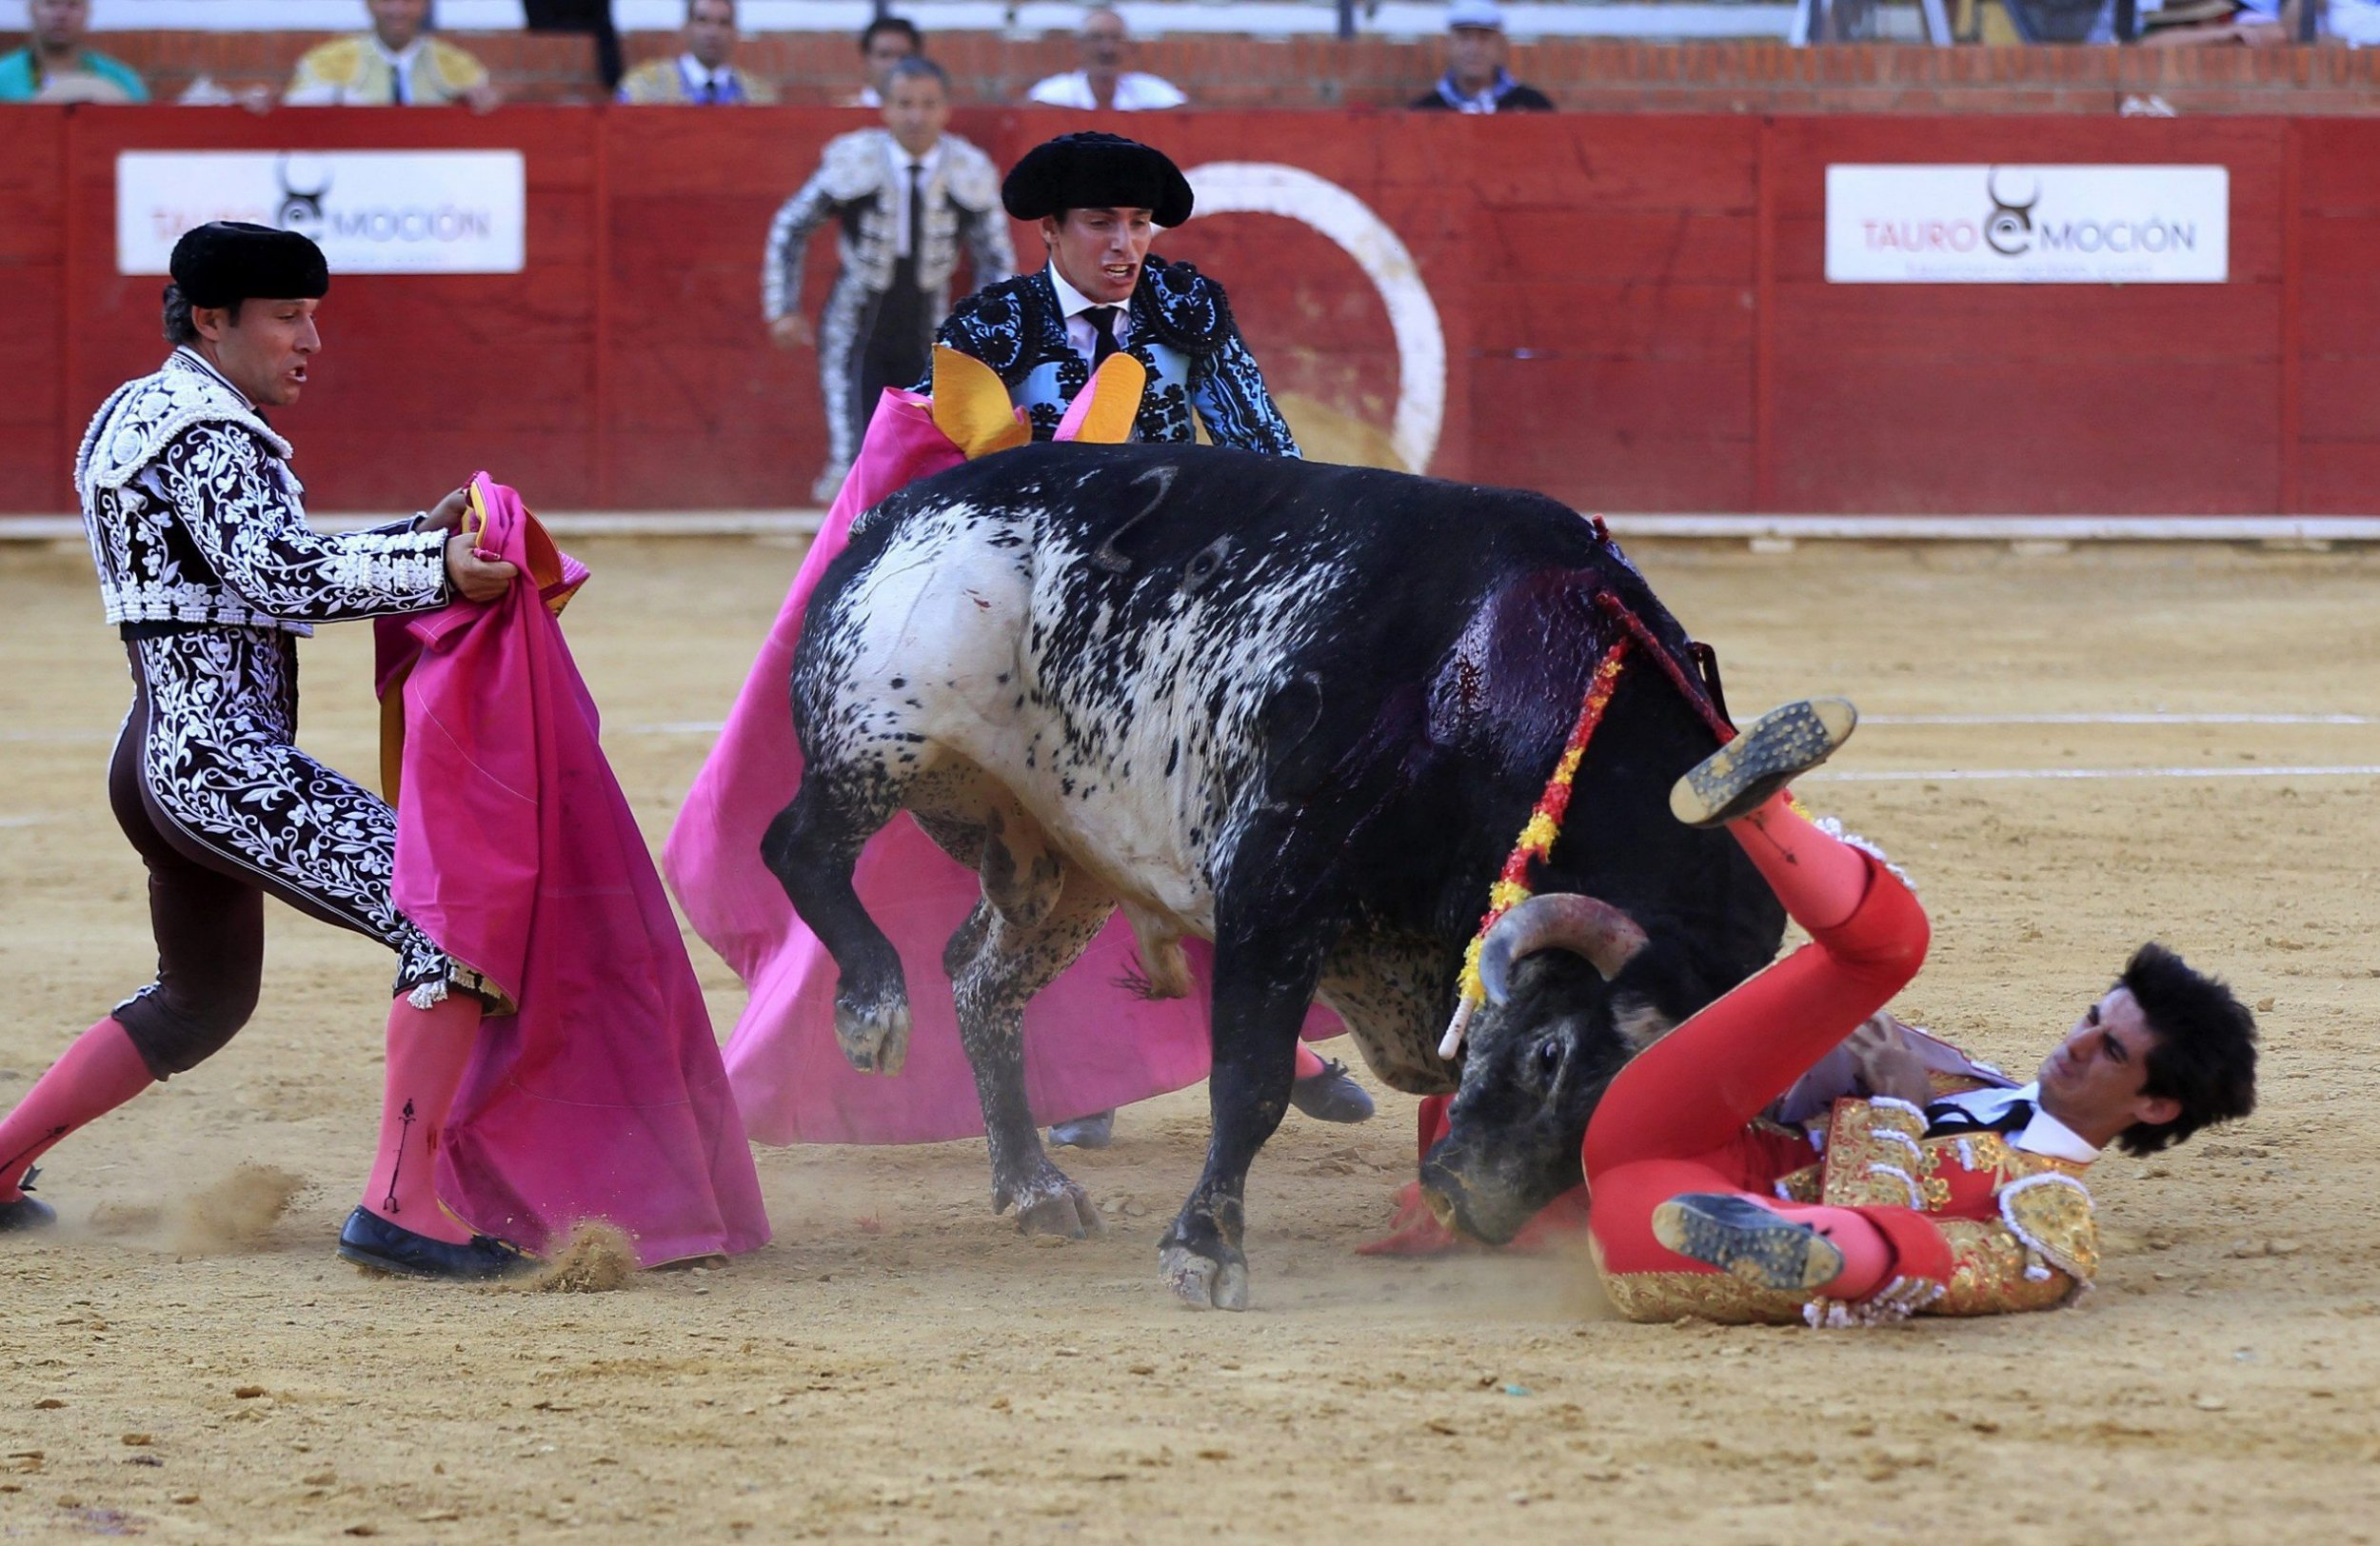 epa05417591 Spanish bullfighter Victor Barrio (R), 29, is gored during a bullfight held on the occasion of Feria del Angel in Teruel, Aragon (Spain), 09 July 2016. Barrio died due to the injures after being seriously gored by his third bull. EPA/ANTONIO GARCIA